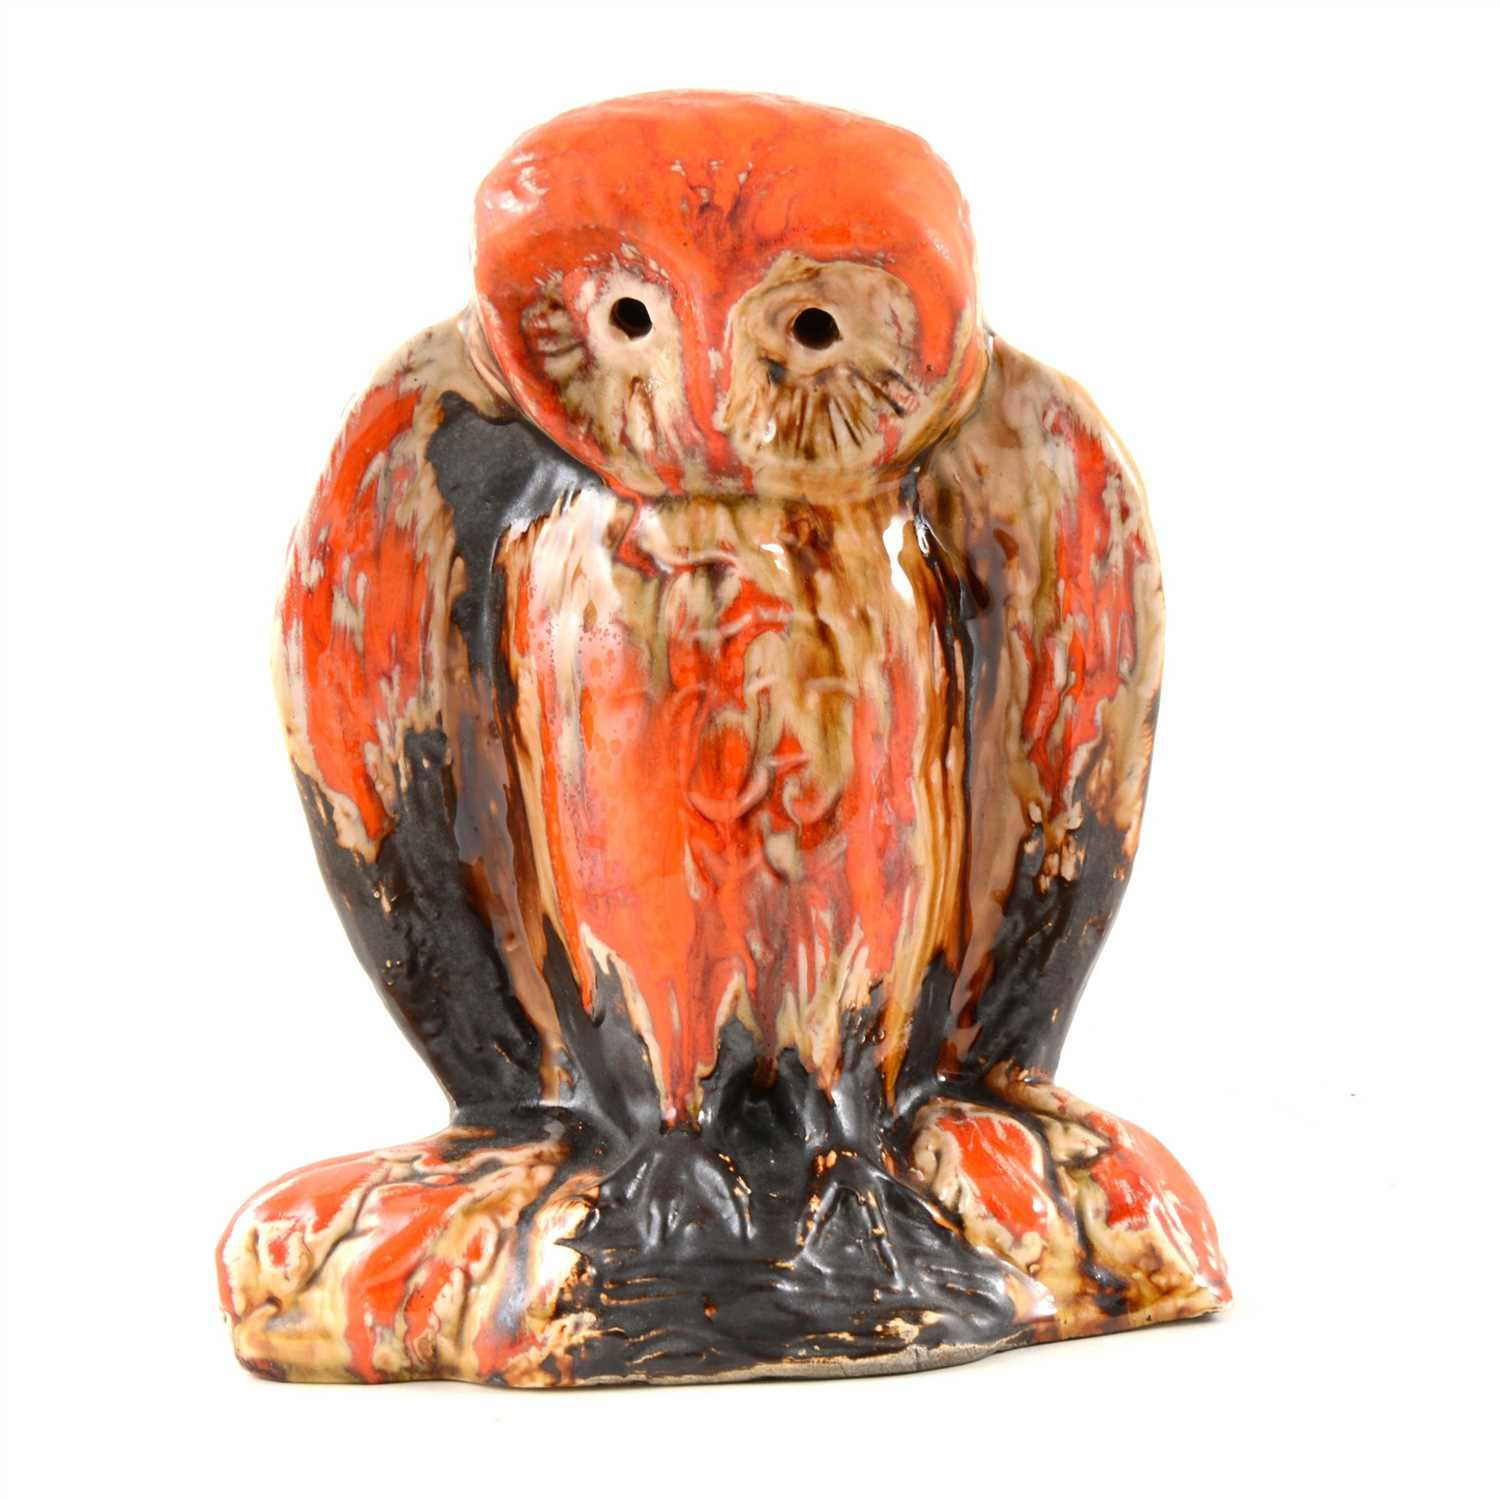 Lot 4-Eric Leaper, a large pottery model of an owl on a branch, running burnished orange glaze over a manganese body, 25.5cm high